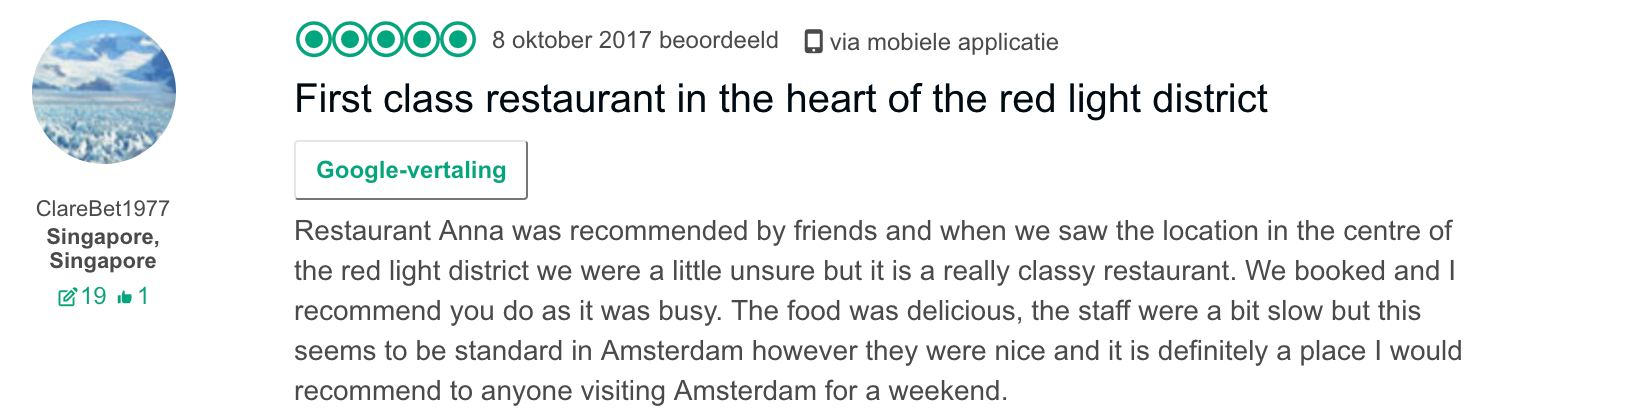 Restaurant Anna Tripadvisor Review